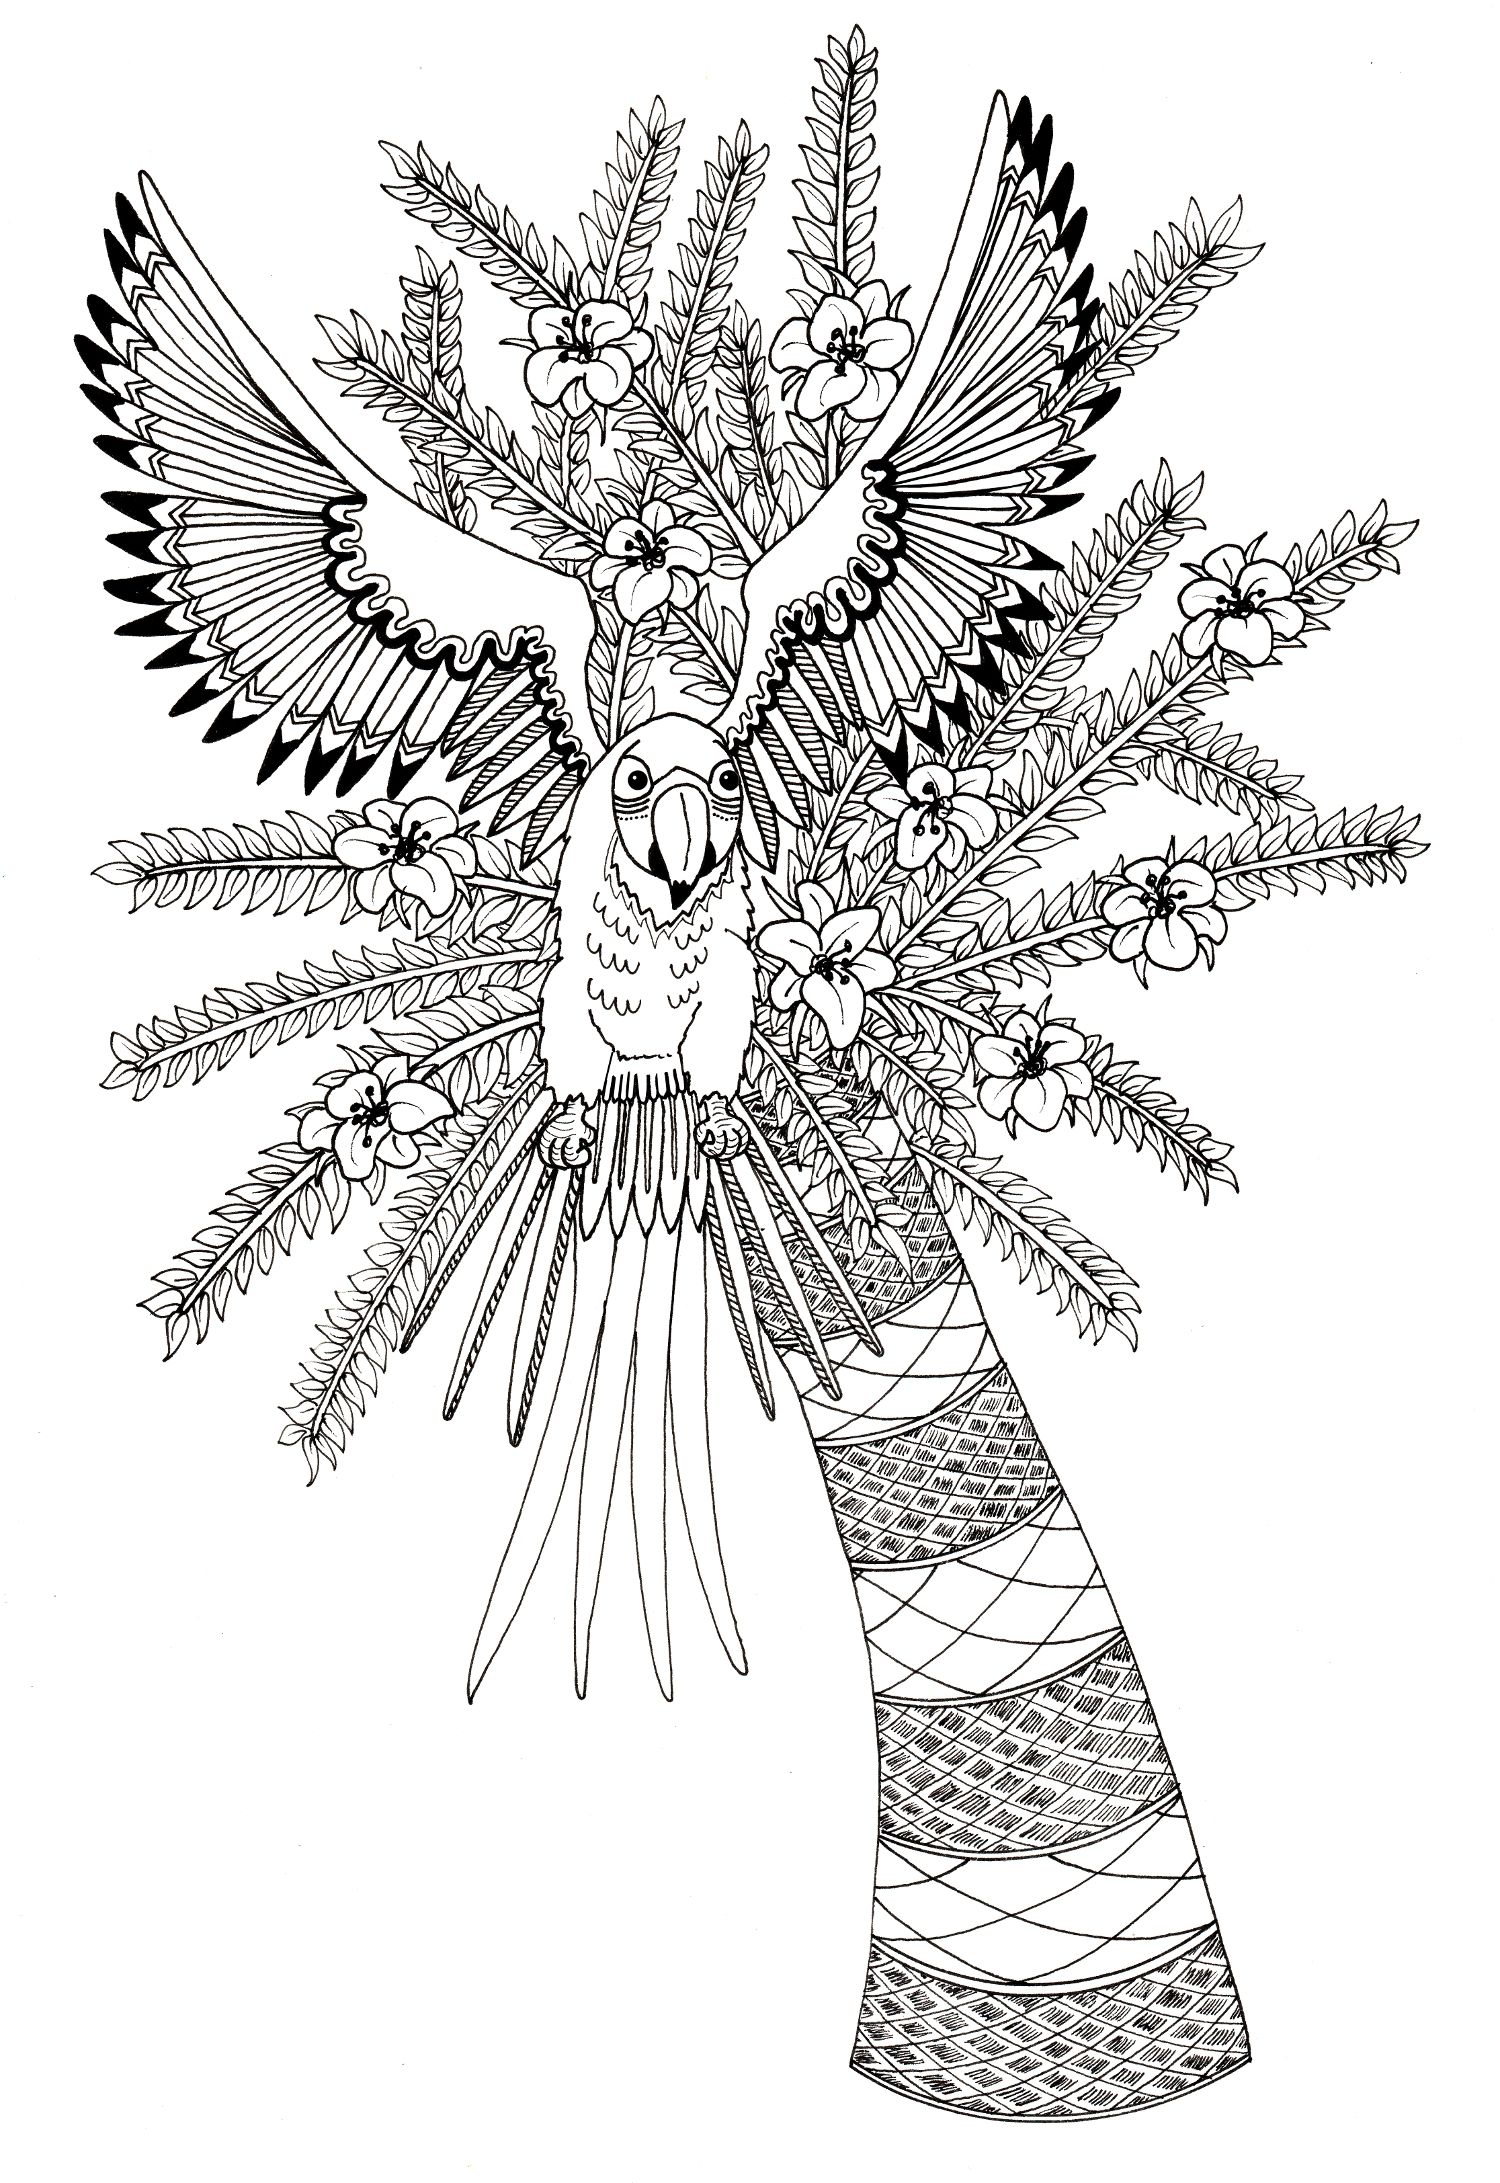 Parrot Design For Adult Colouring In I Am Working On Getting A Book Made So Please If You Print It Out To Try Show Me